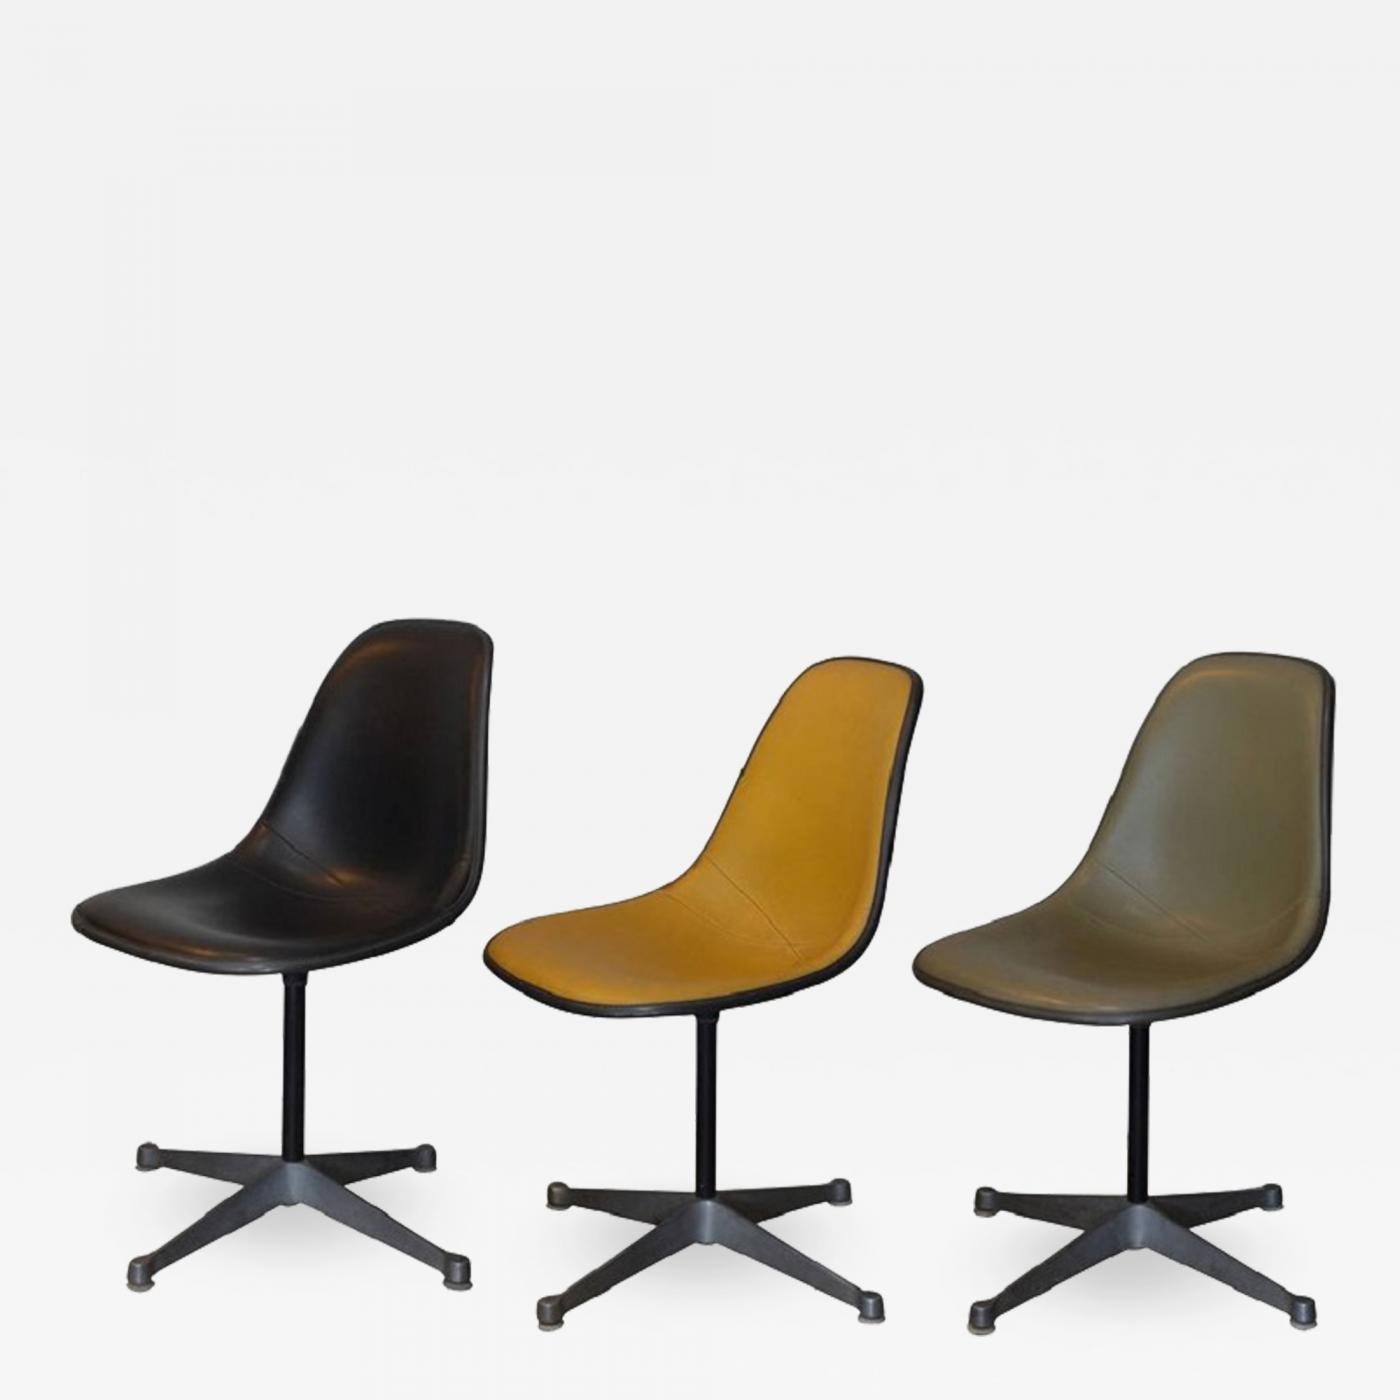 Image of: Herman Miller Set Of Three Vintage Swiveling Chairs By Eames For Herman Miller